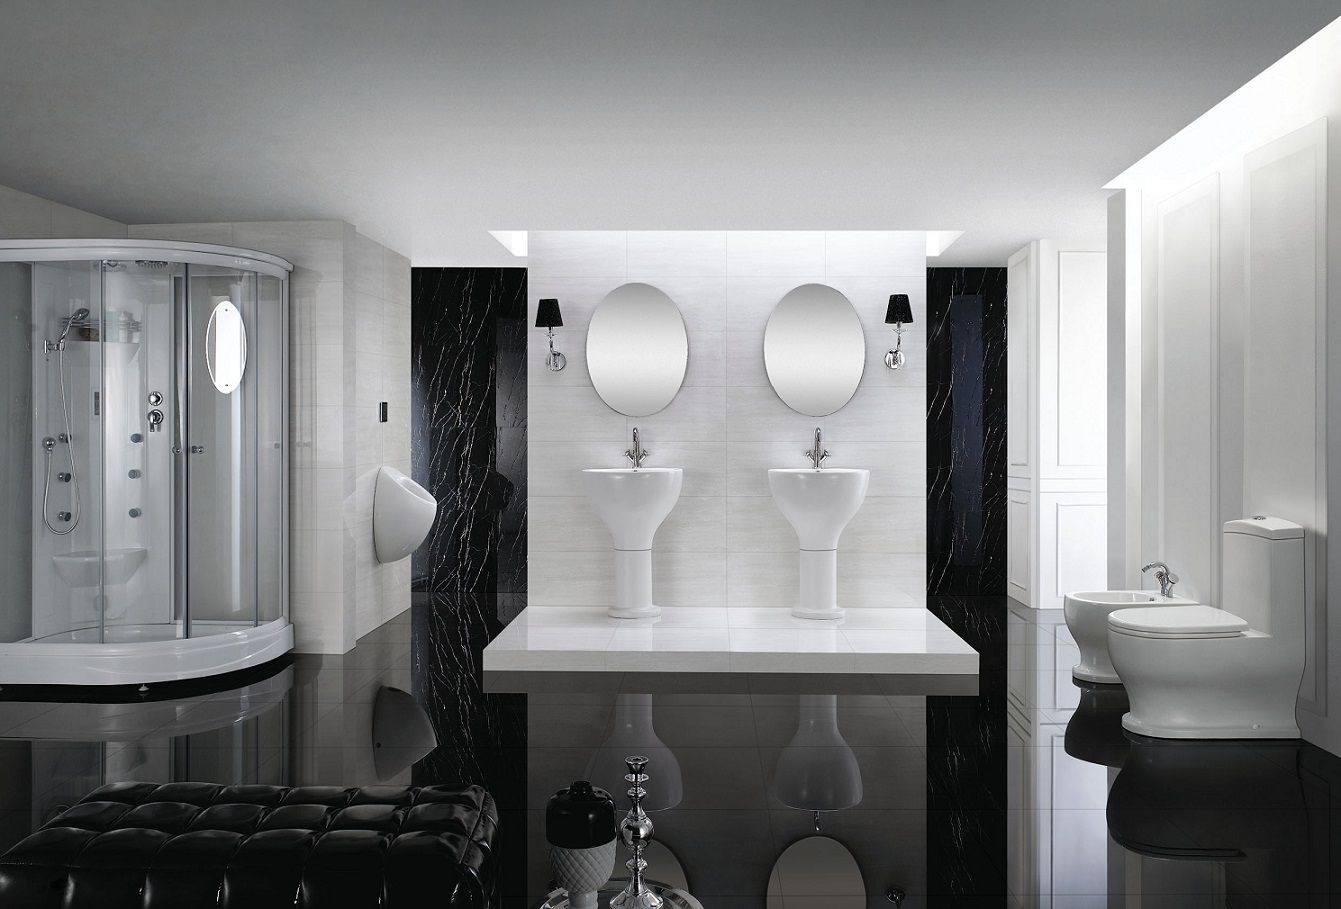 click to see larger image  Modern Toilet. Modern Toilet   Bathroom Toilet   One Piece Toilet   Dual Flush